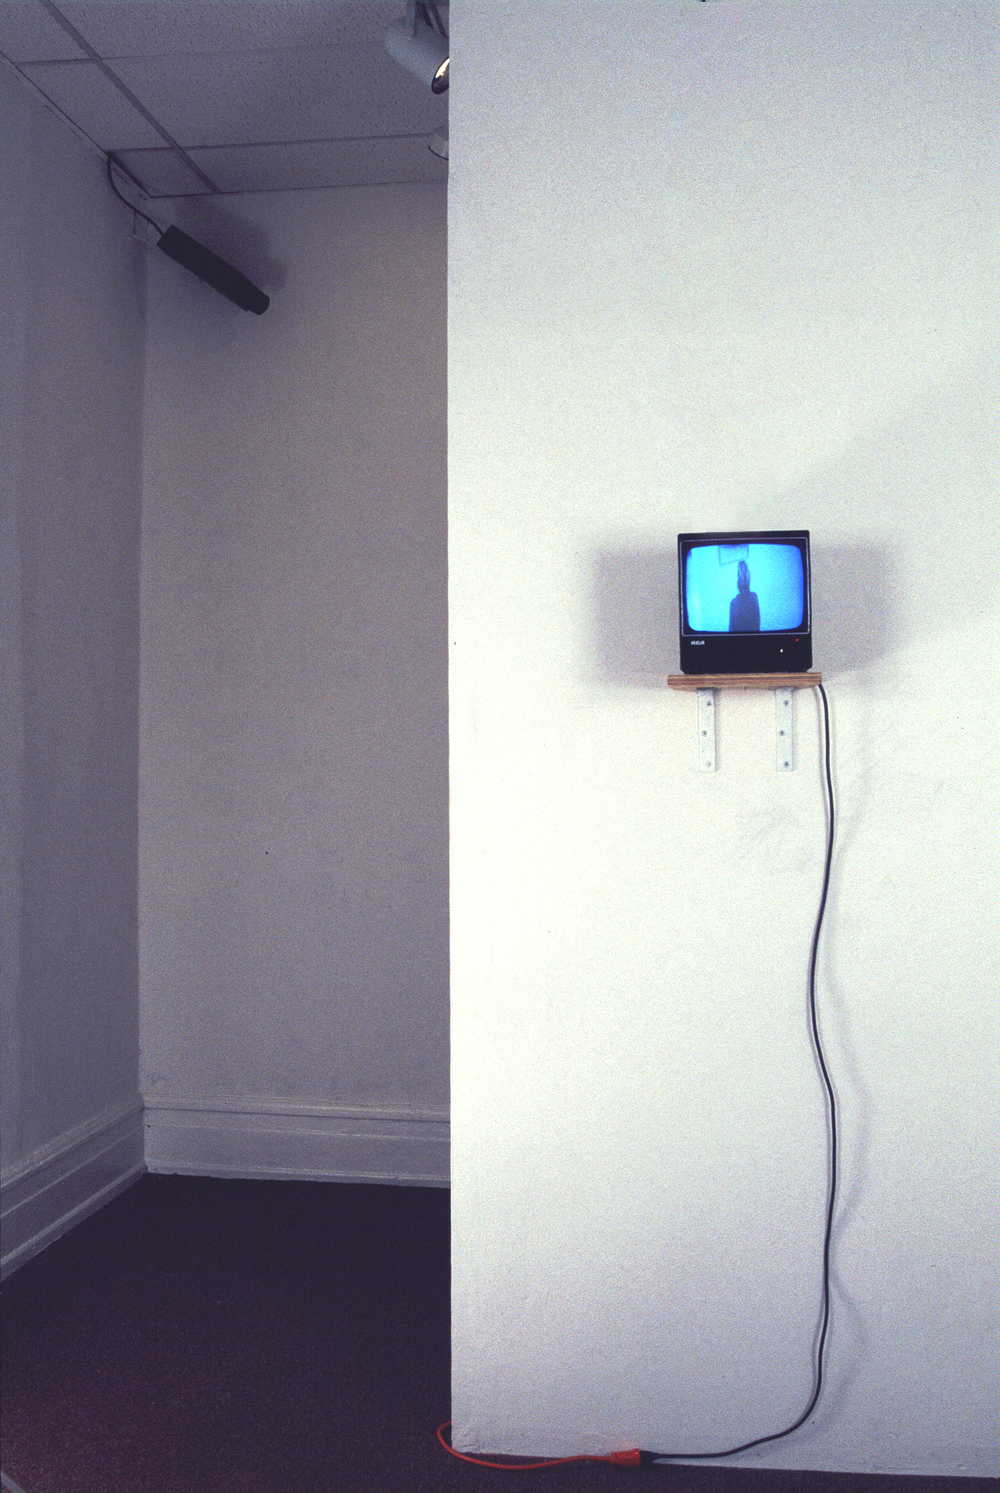 (installation view, front view) Room Shift 1997 surveillance equipment, custom-made two part wooden bench, custom-made two part wooden frame, color photograph and various cables & cords dimensions vary